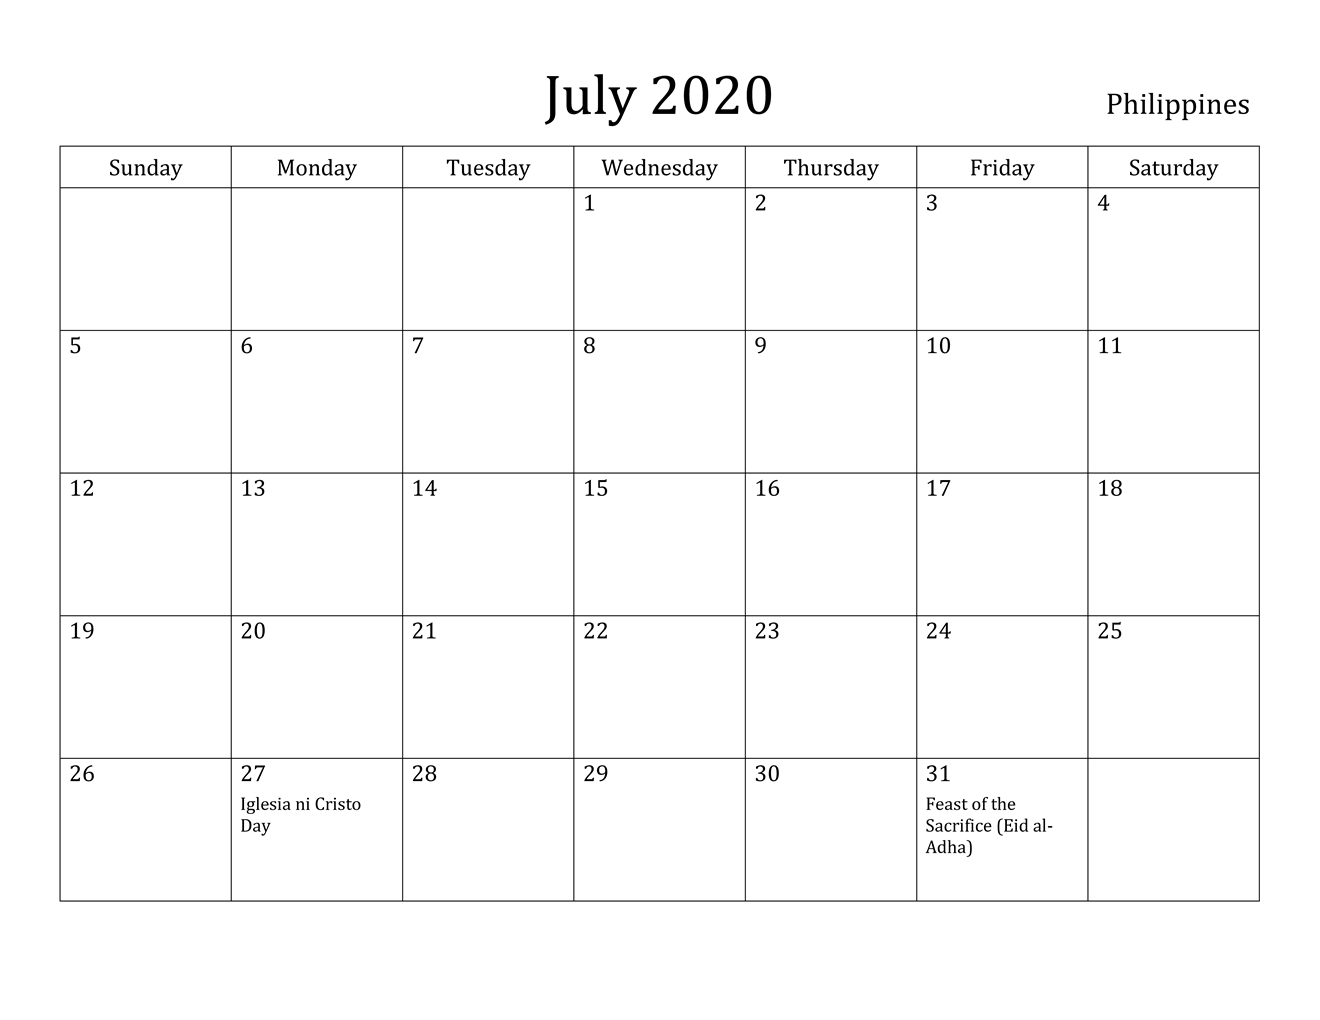 July 2020 Calendar Philippines Holidays